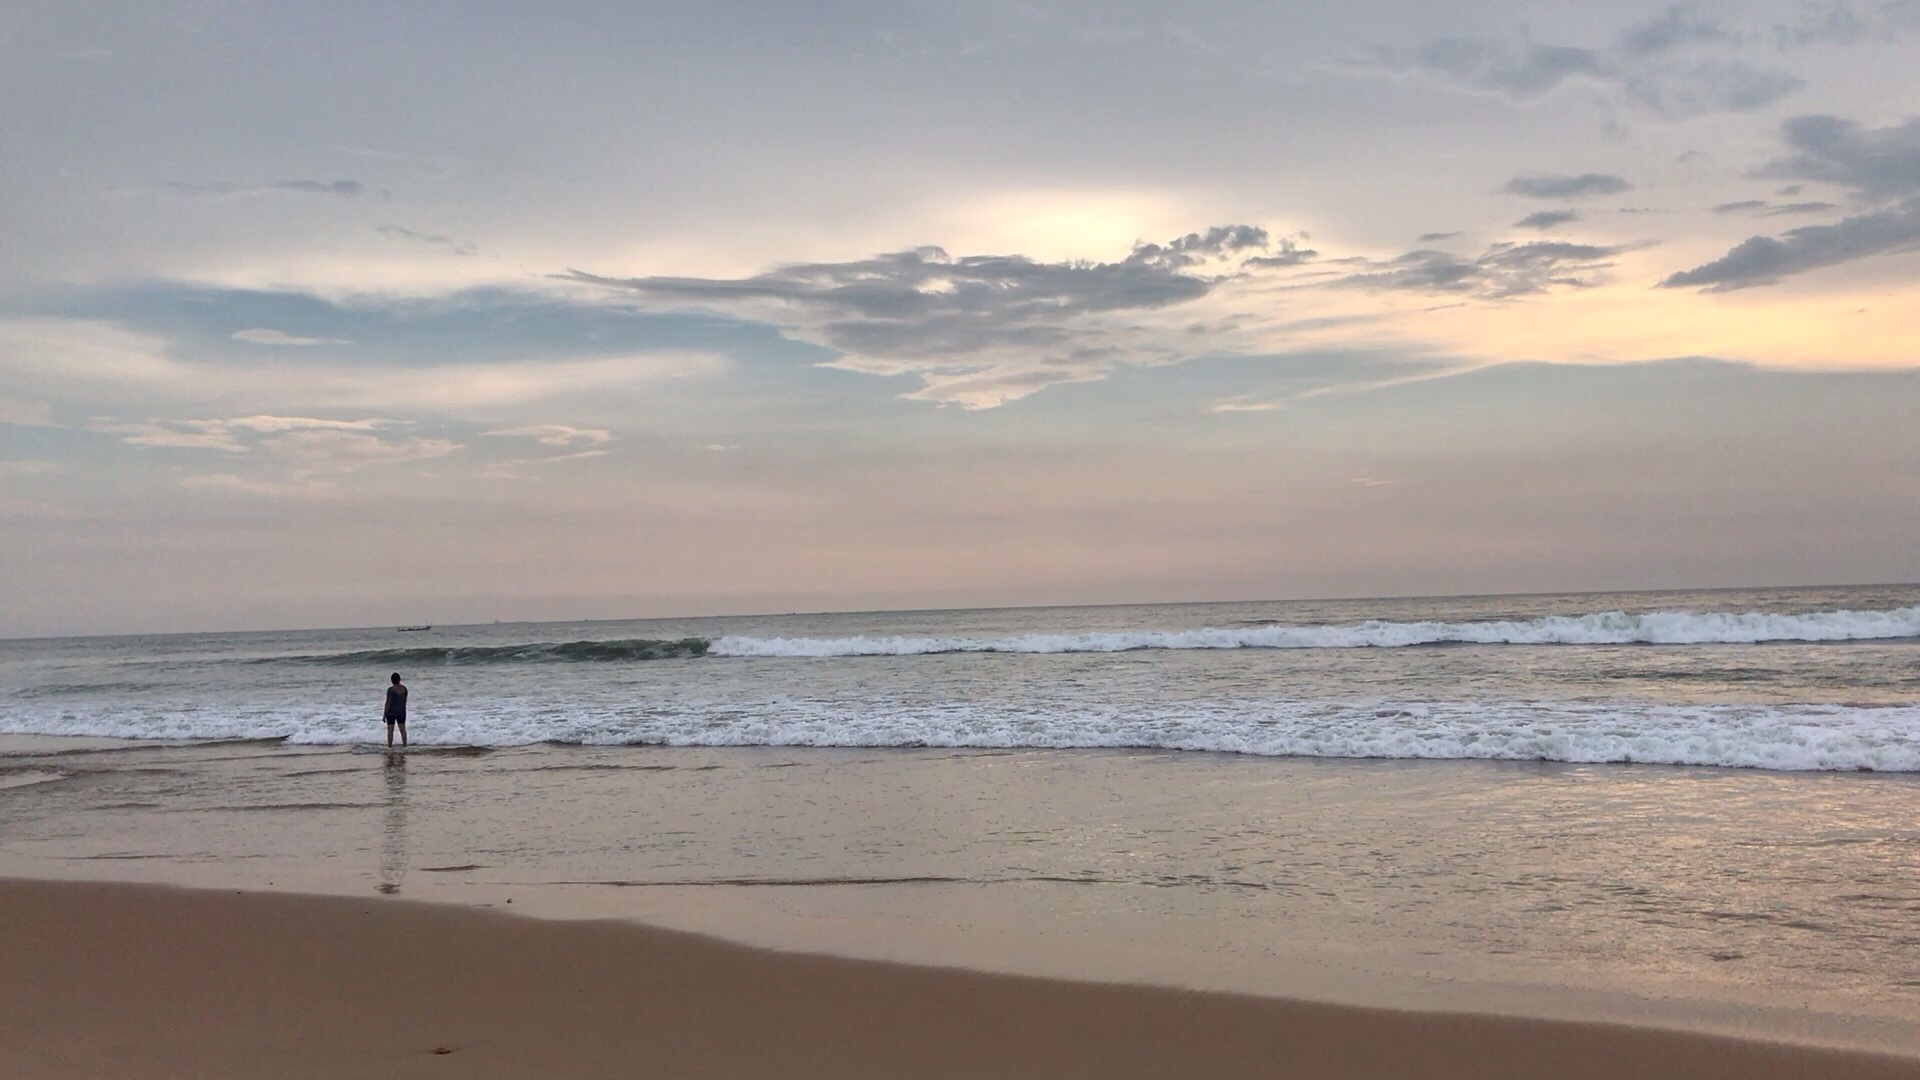 Time Lapse at Candolim Beach by Ankur Bagai